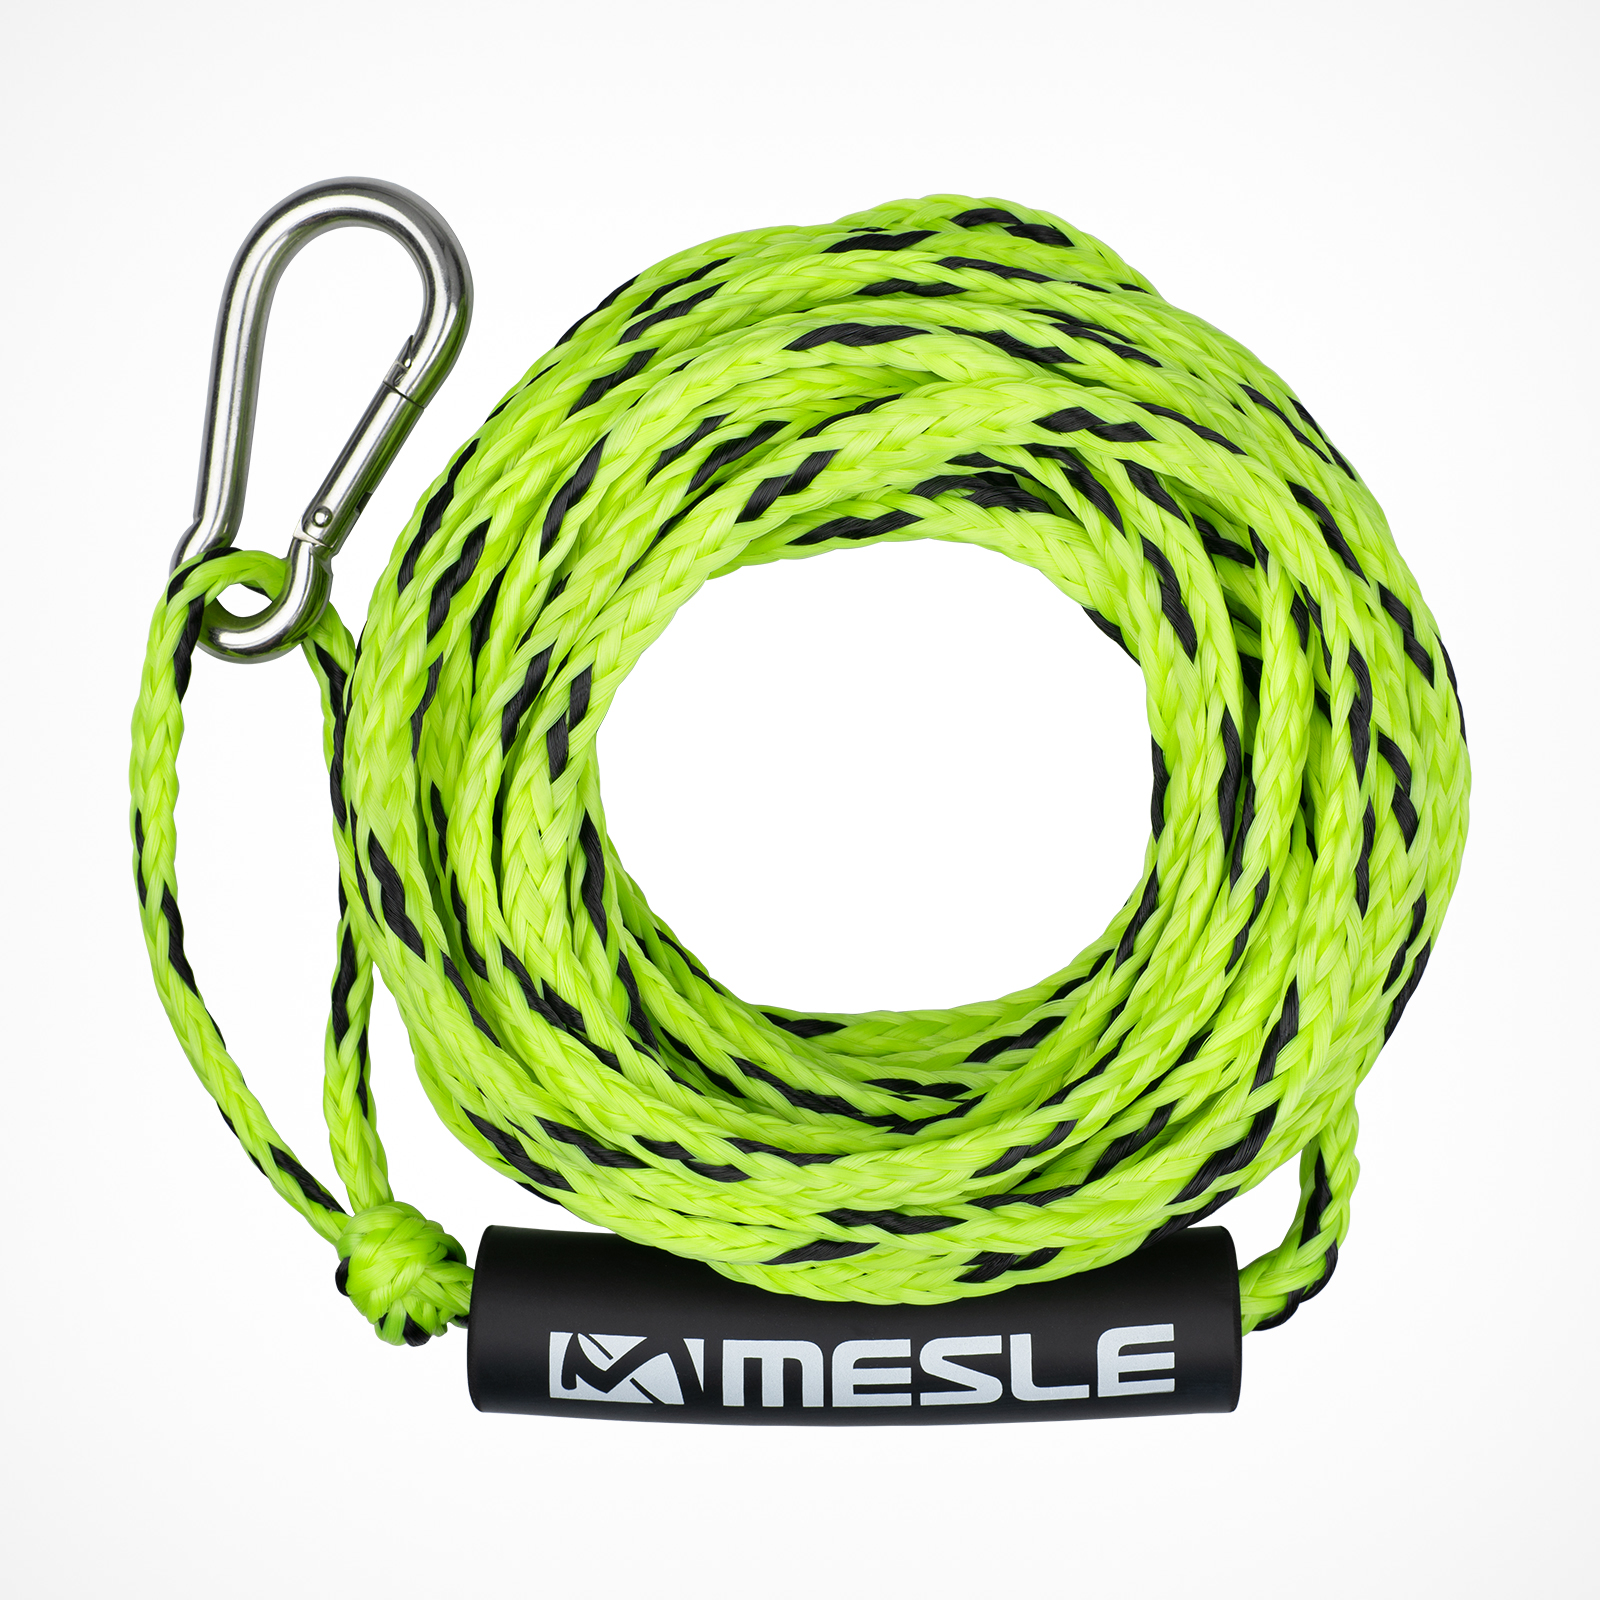 MESLE Tow Rope for 2 persons in lime, 50' for Water Sports Tubes, floating and with Carabiner